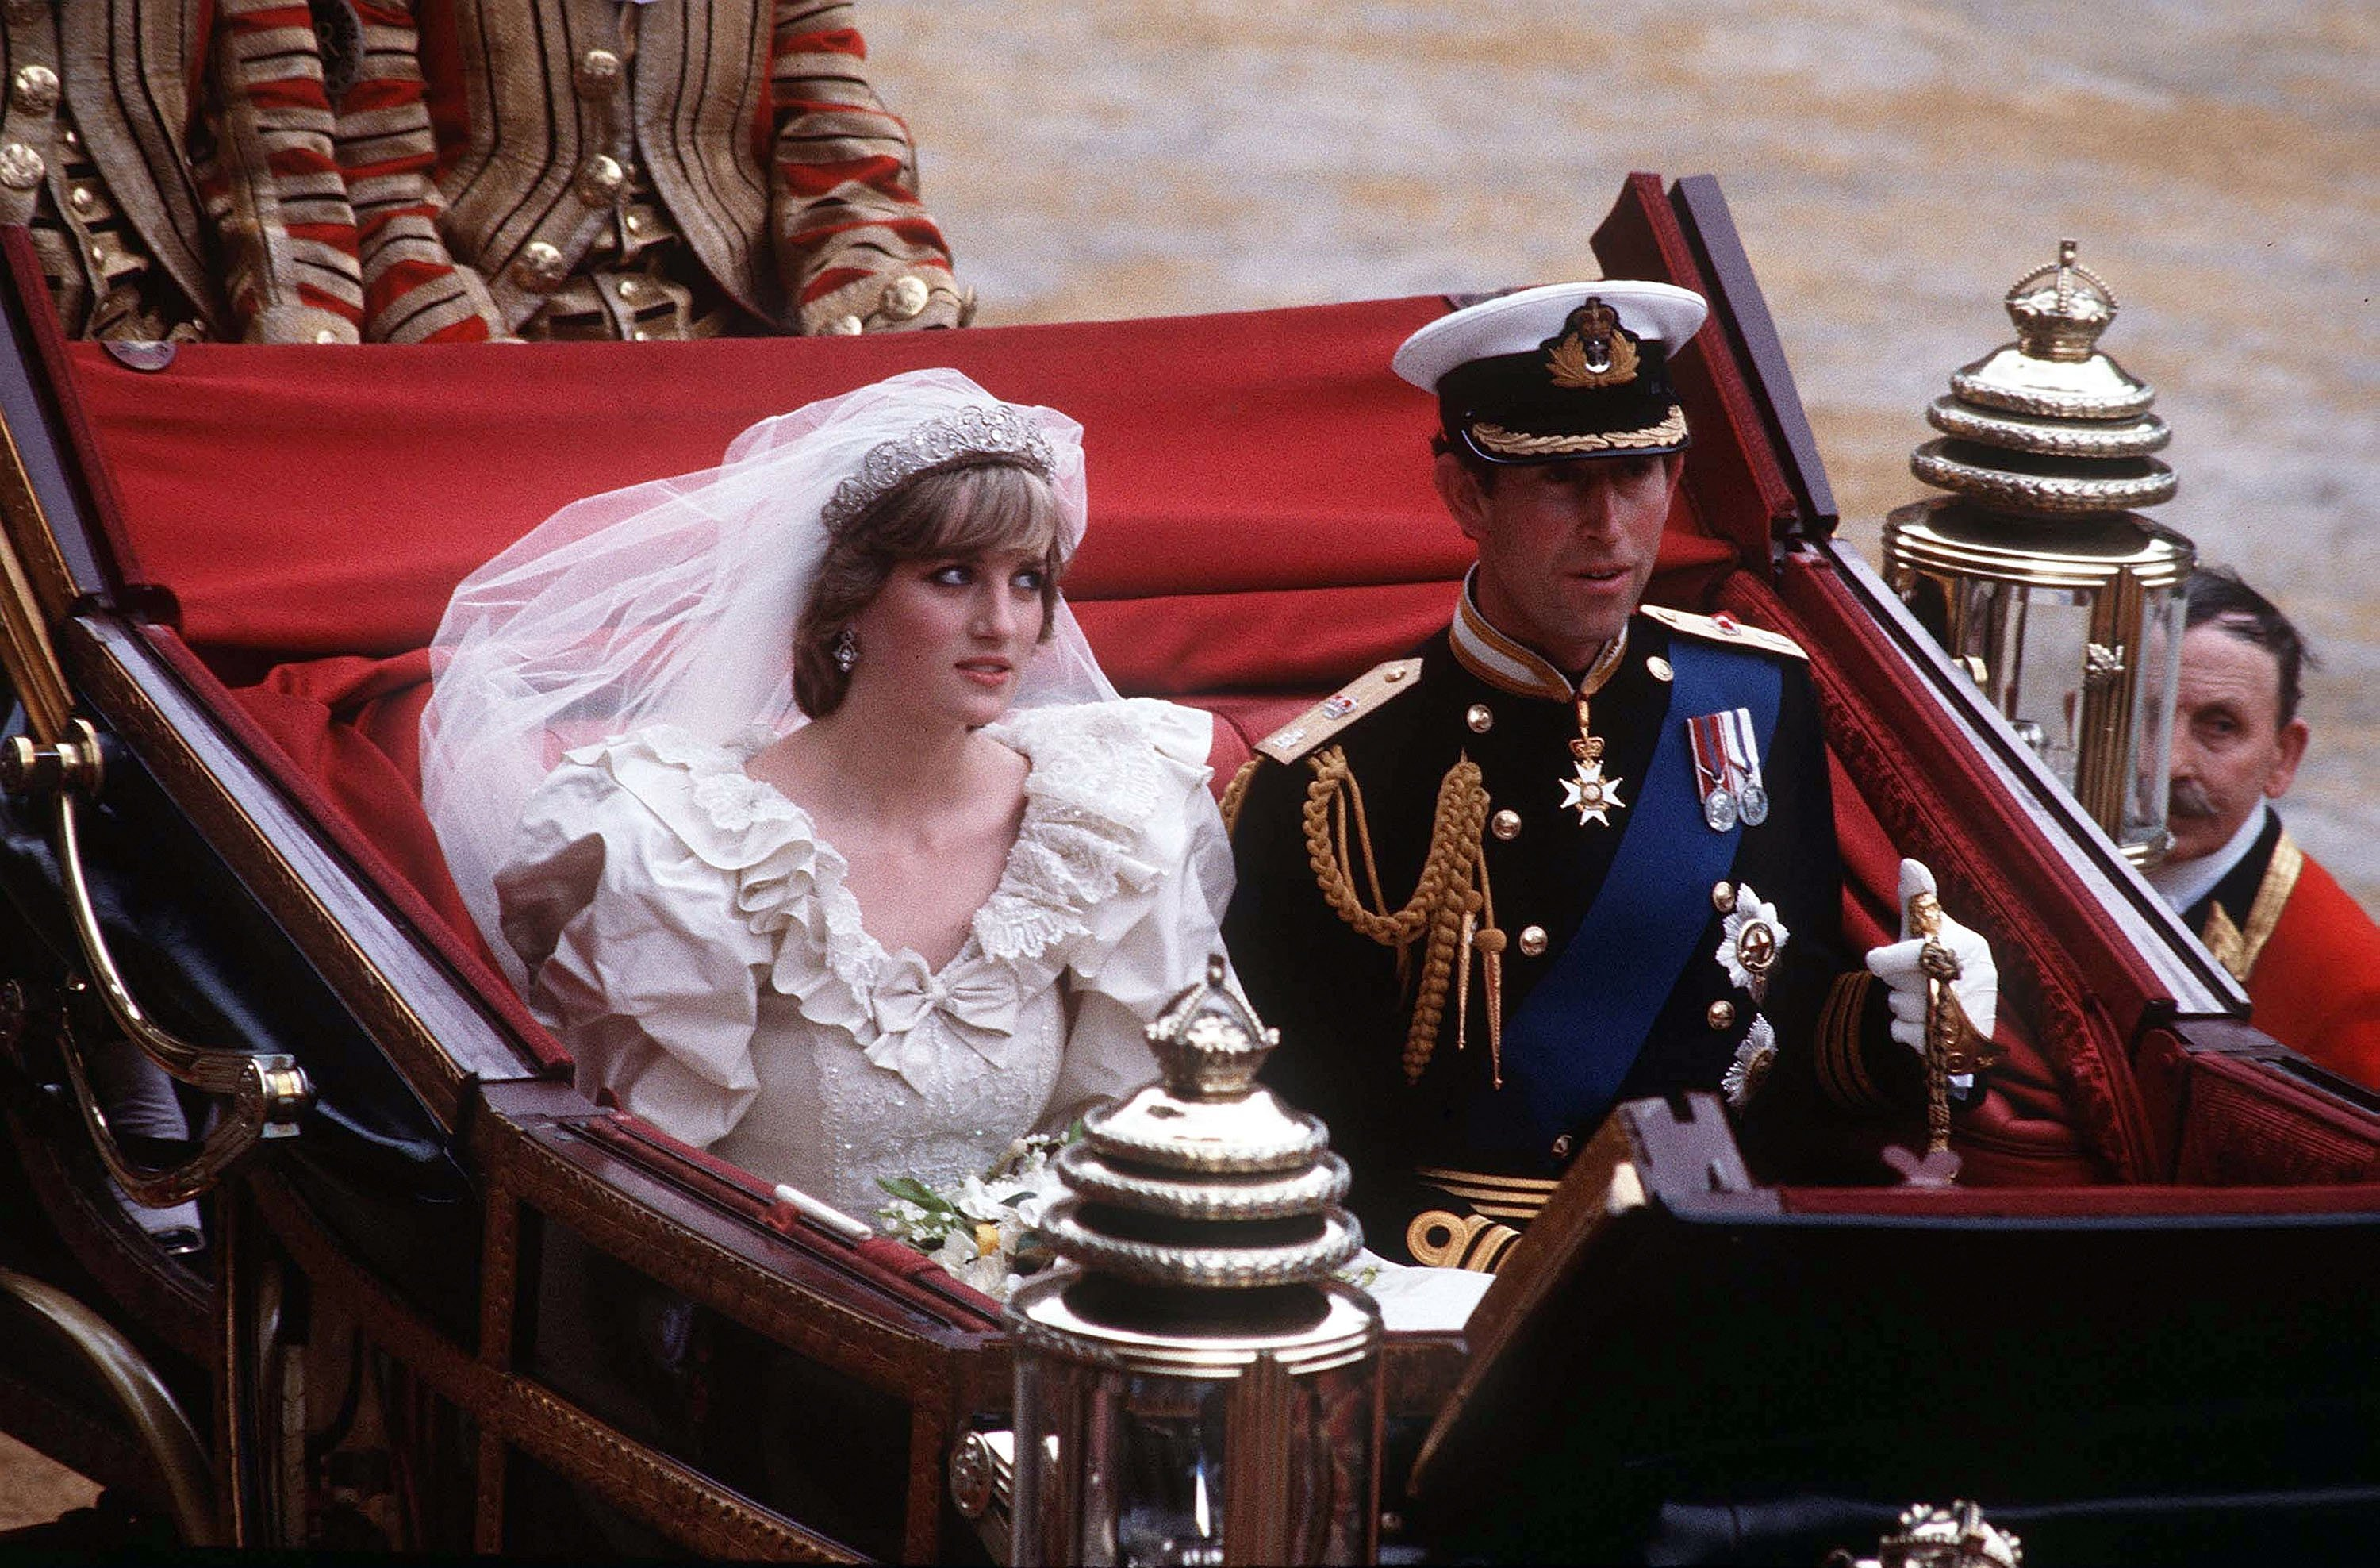 Prince Charles and Princess Diana on their wedding day in 1991 | Photo: Getty Images